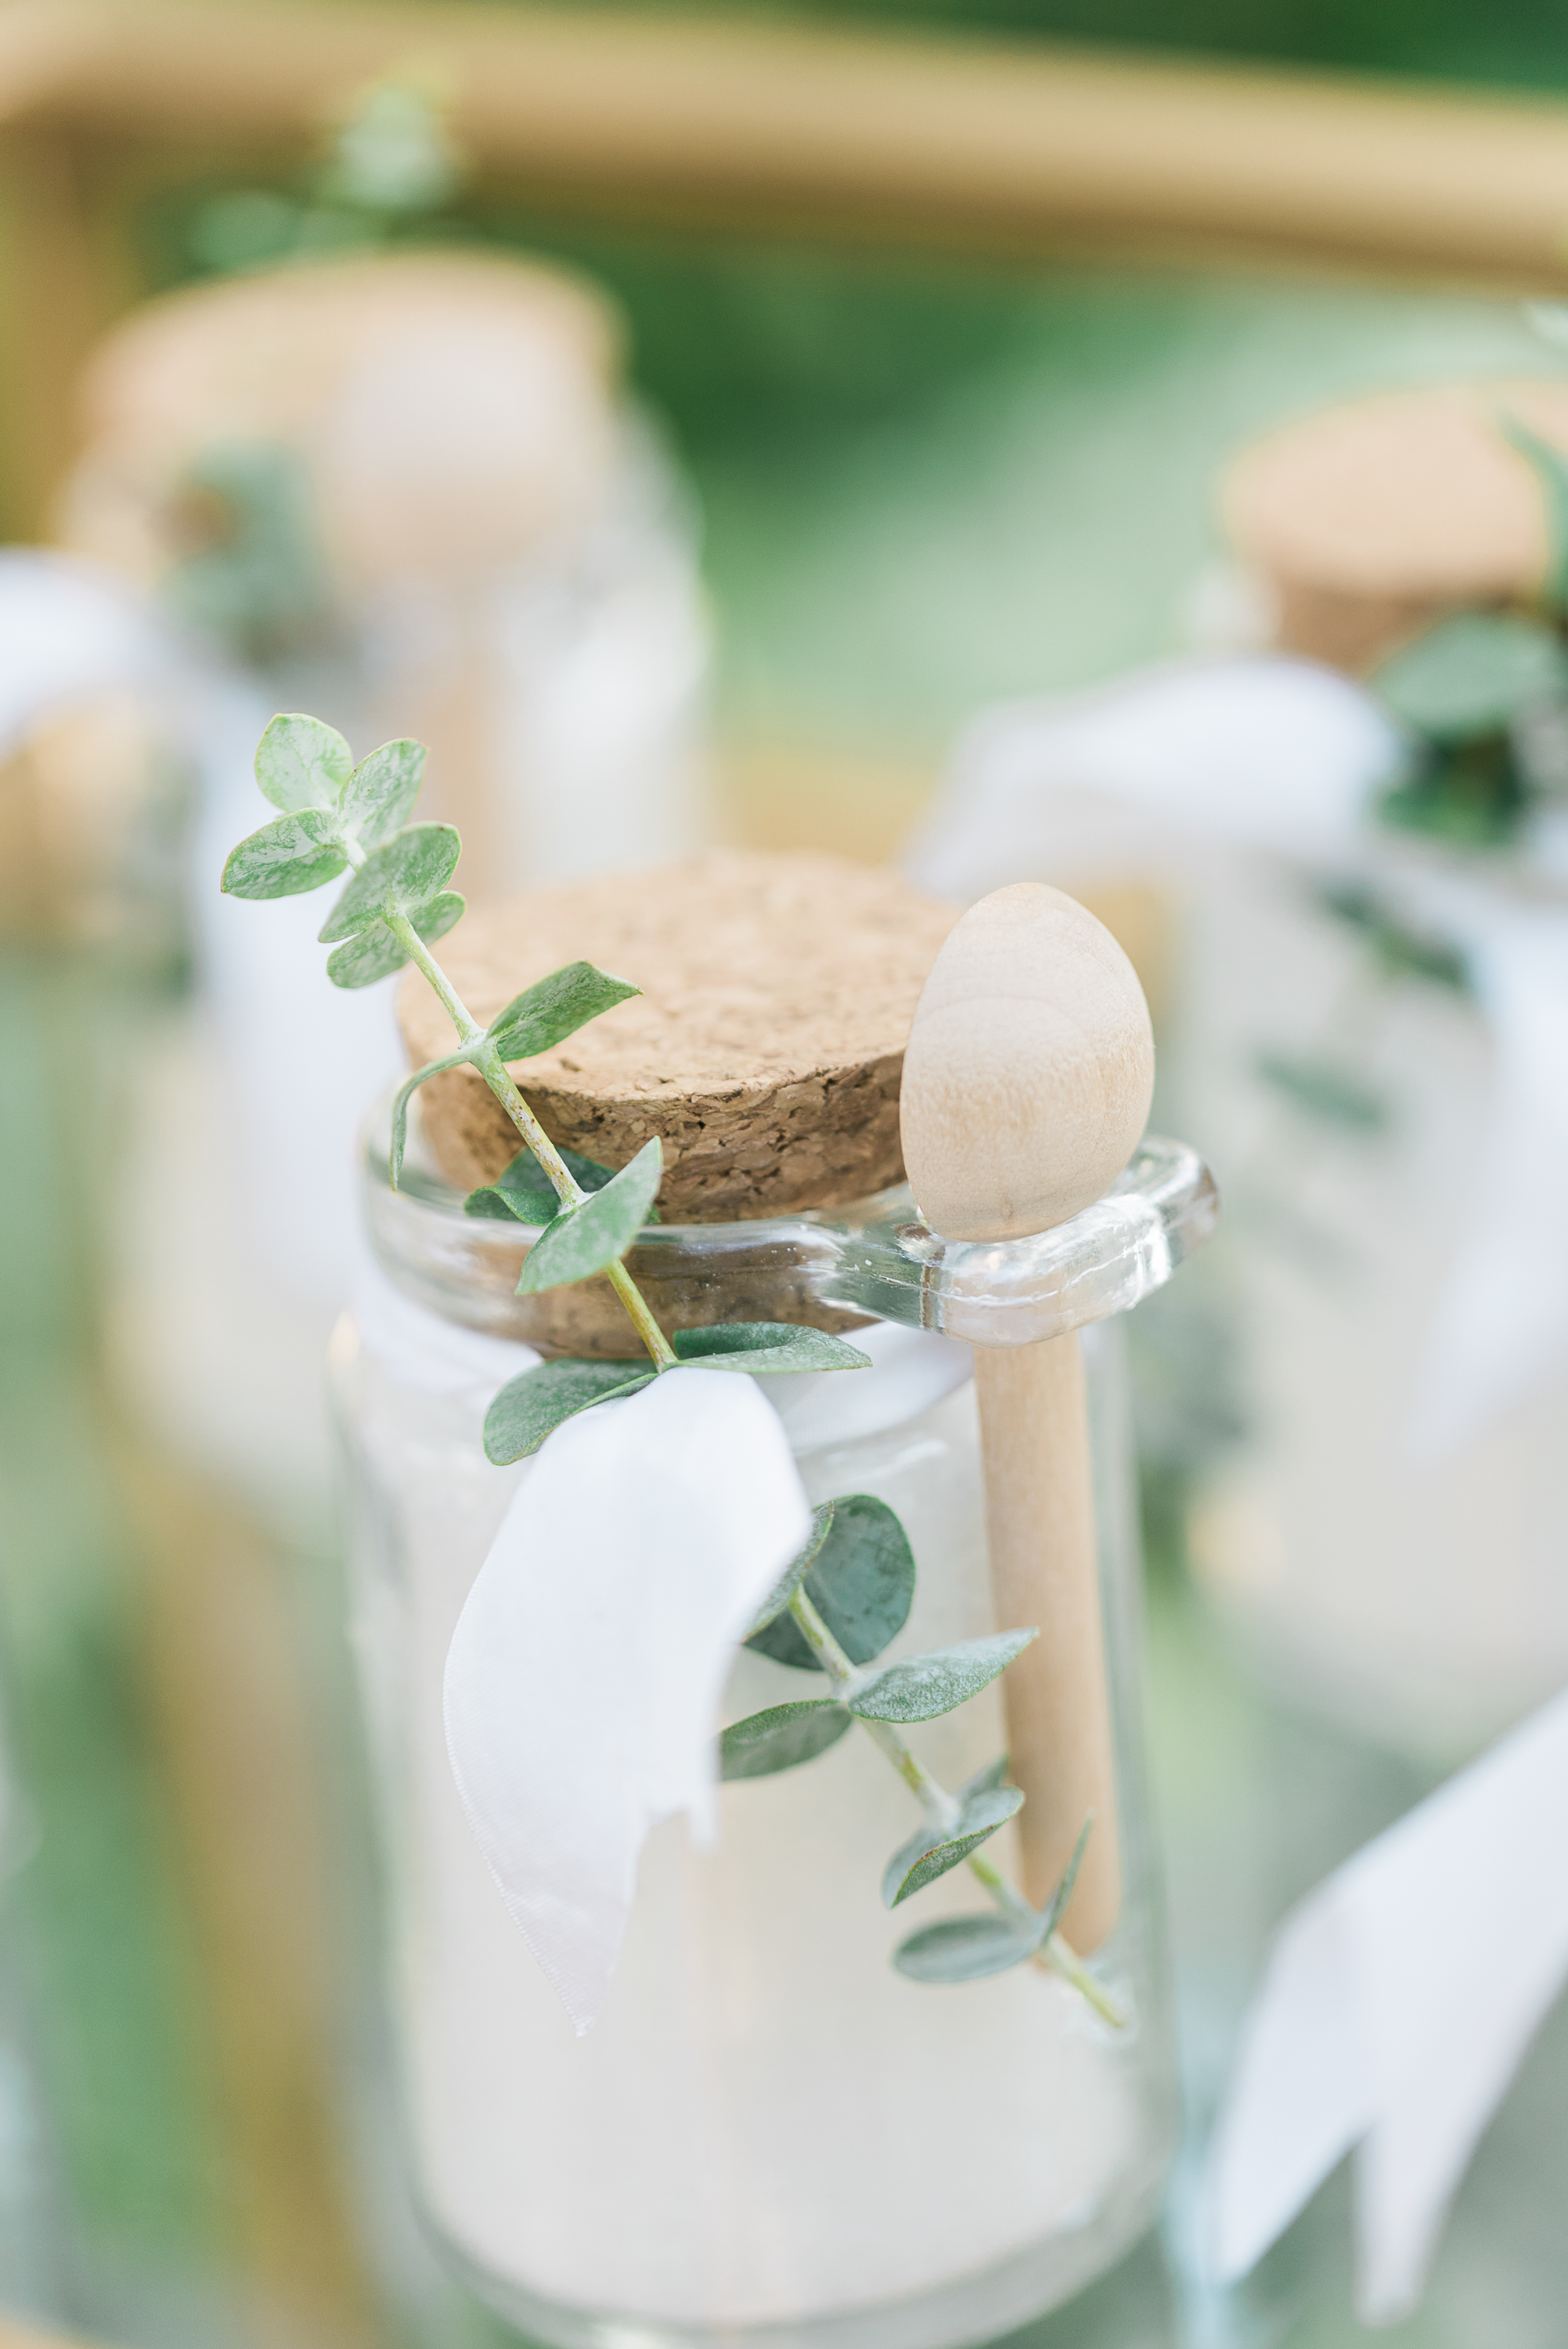 Wedding Favor Ideas - bath salts with little spoon.